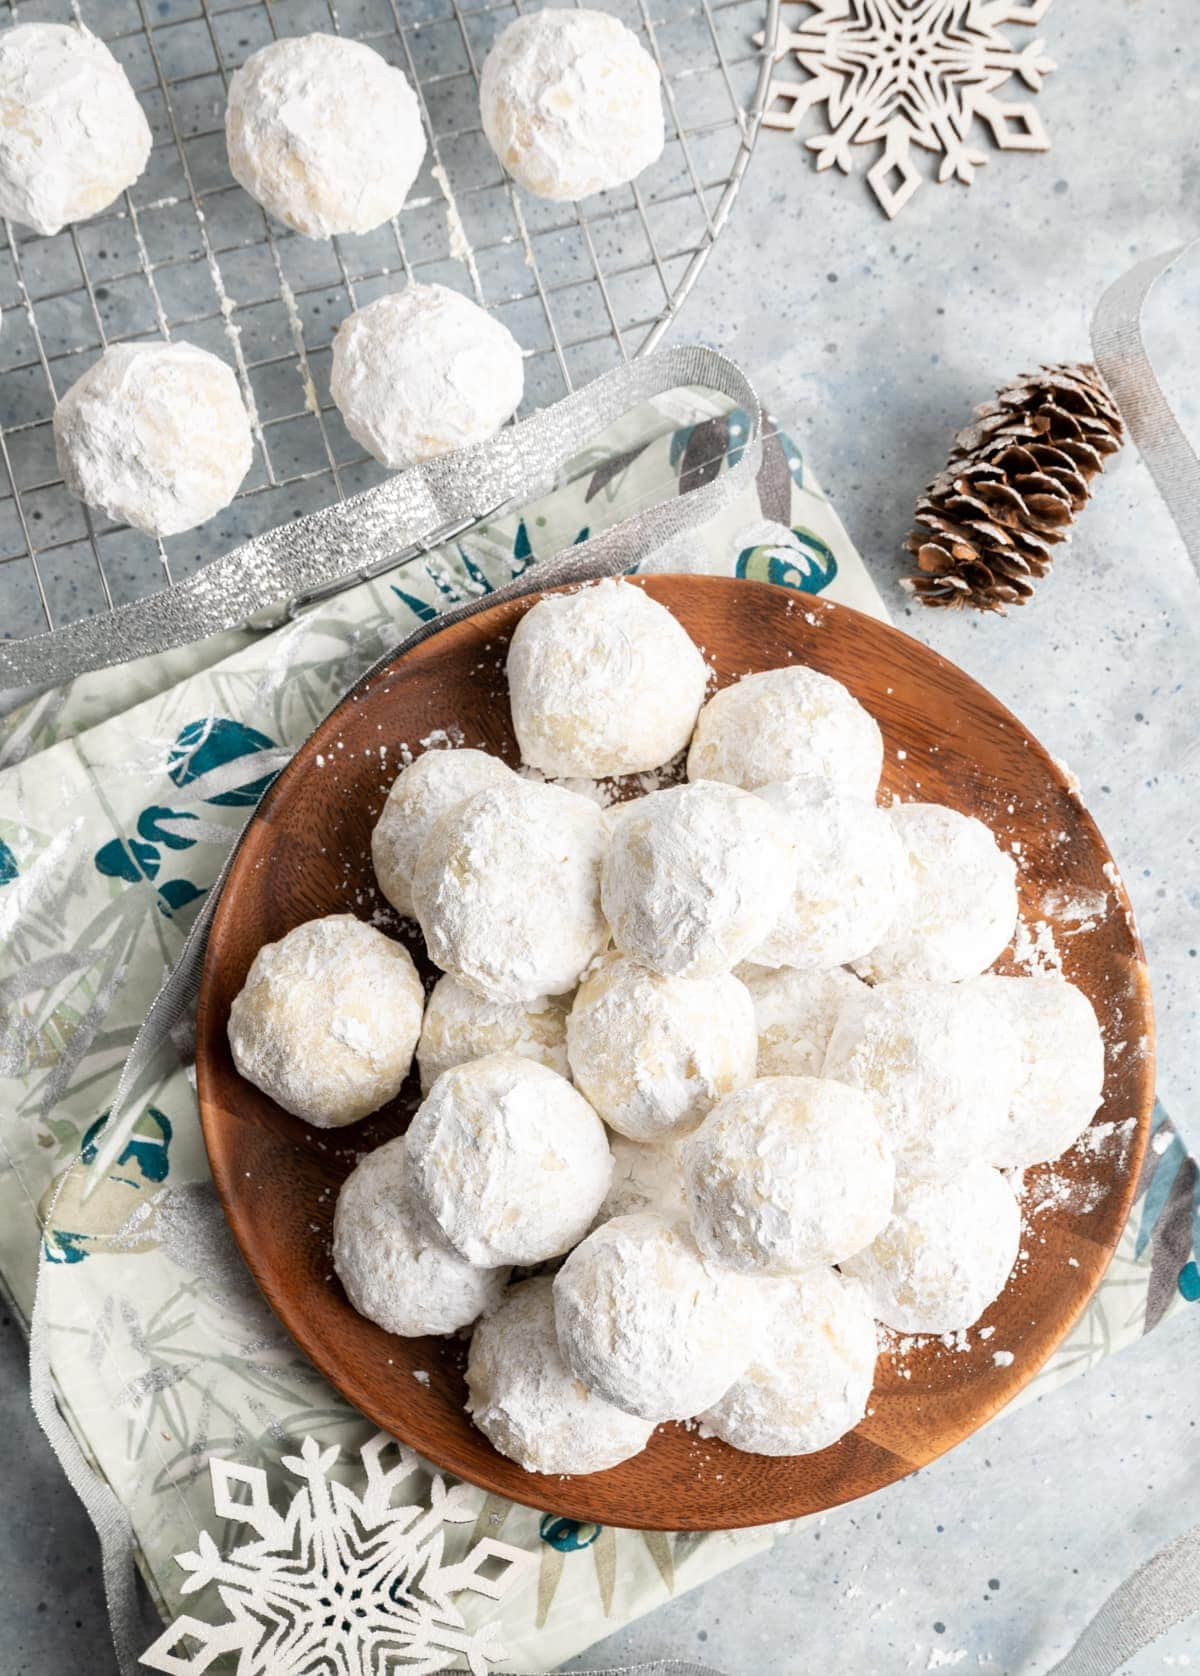 round cookies covered in powdered sugar on a brown plate, wire rack with same cookies, napkin, wood snowflakes, pine cone